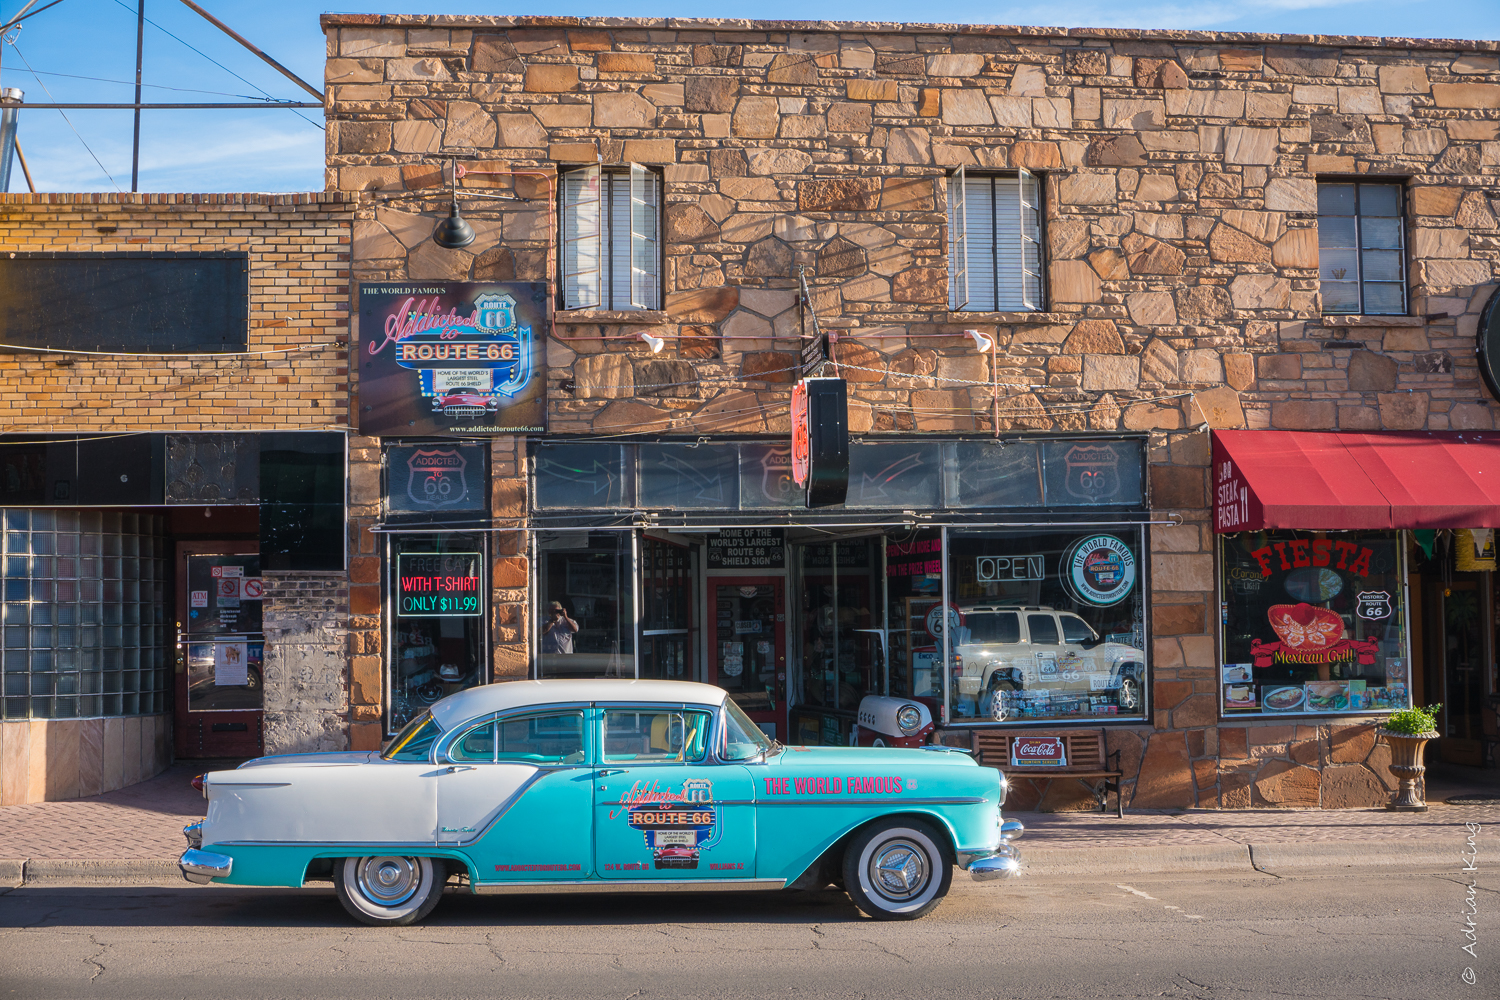 Grand Canyon Hotel on Route 66, USA